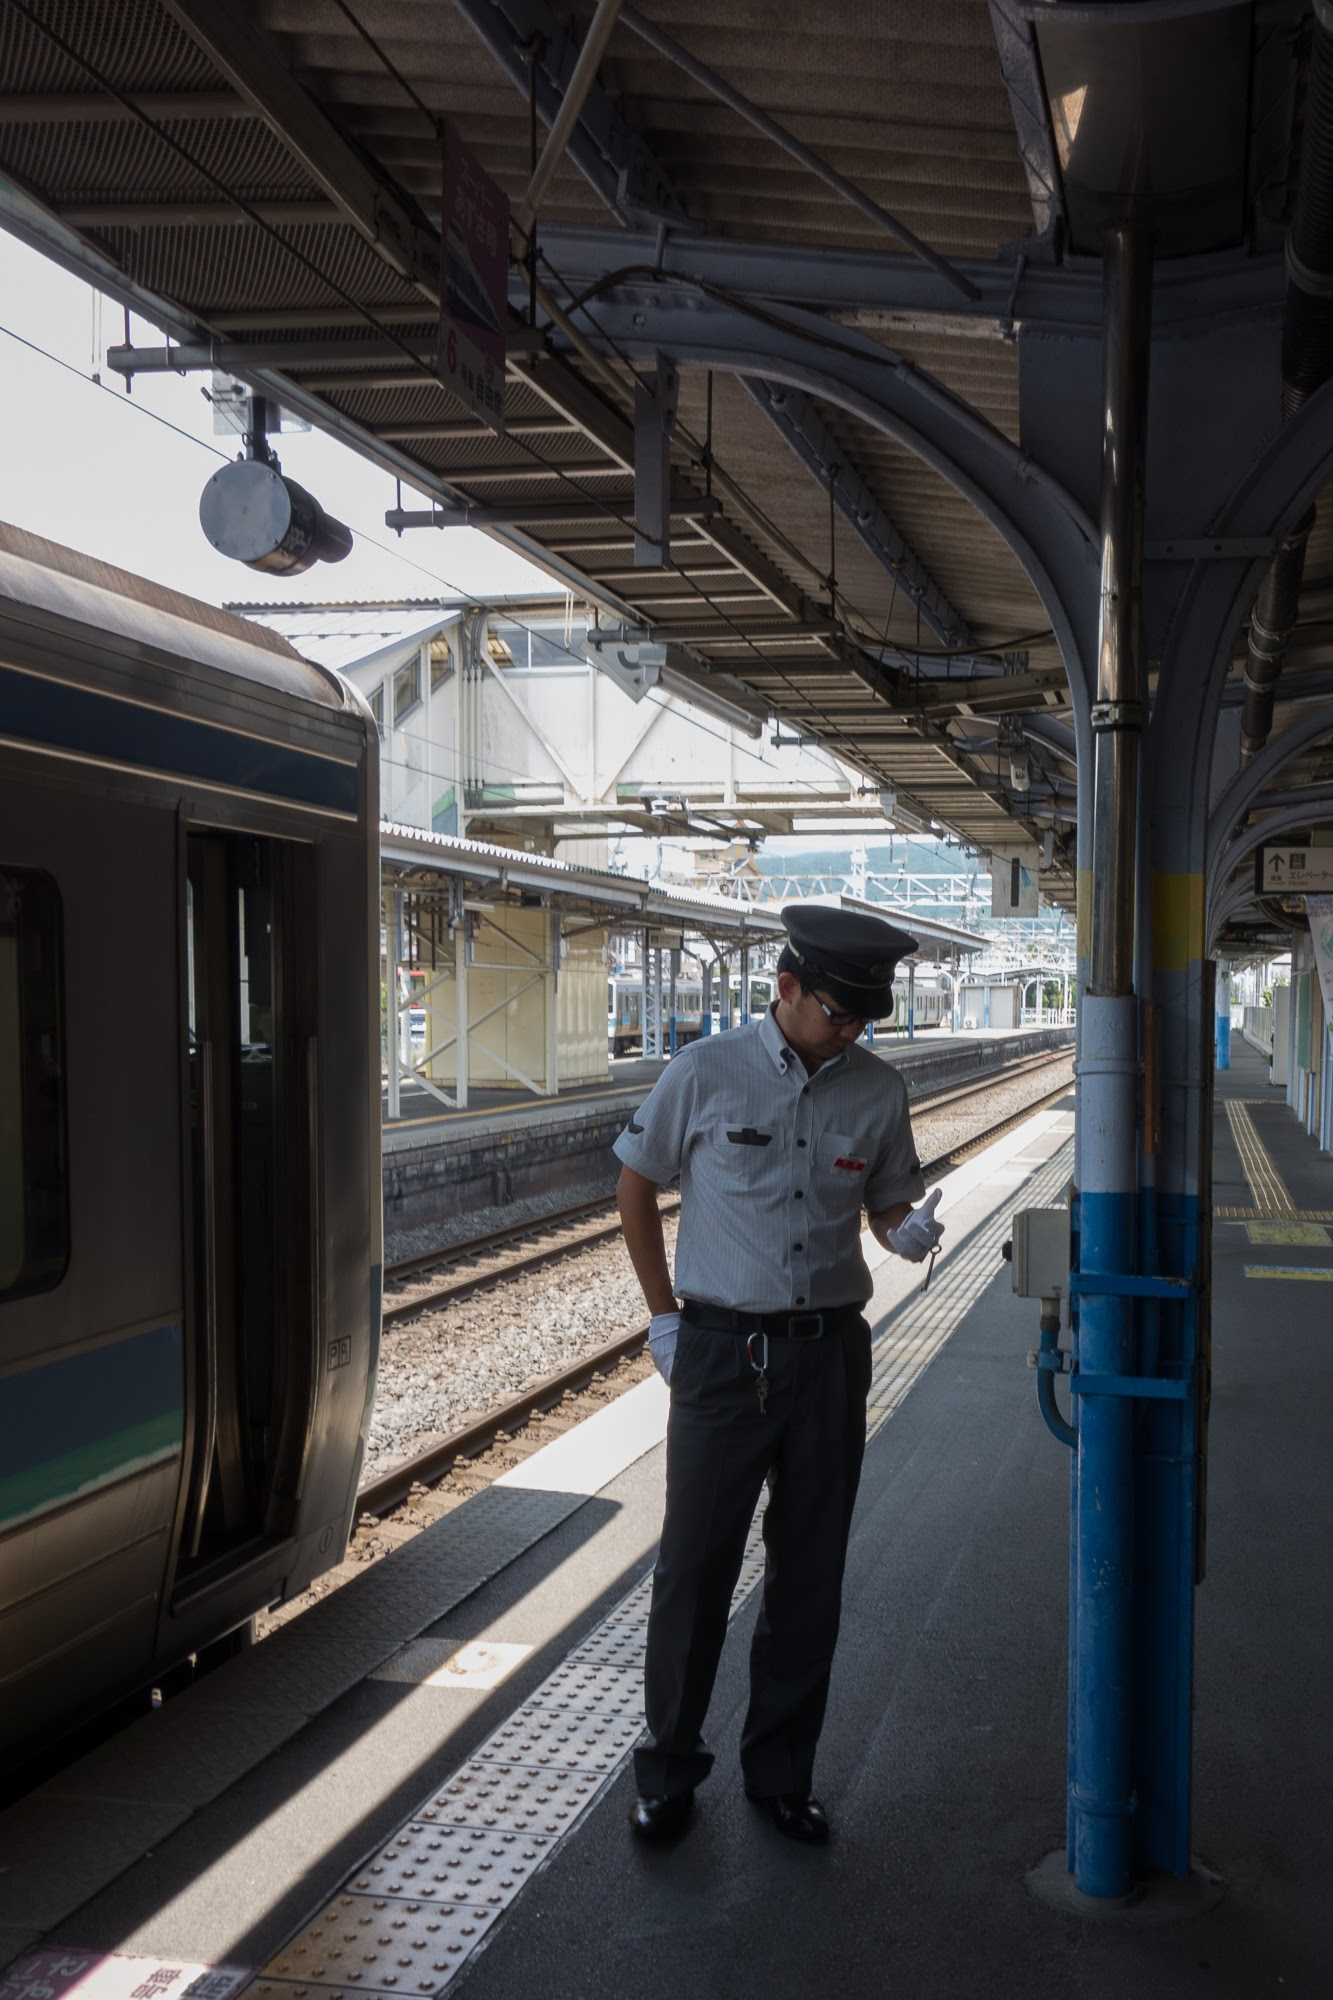 Conductor at Shimo-Suwa Station